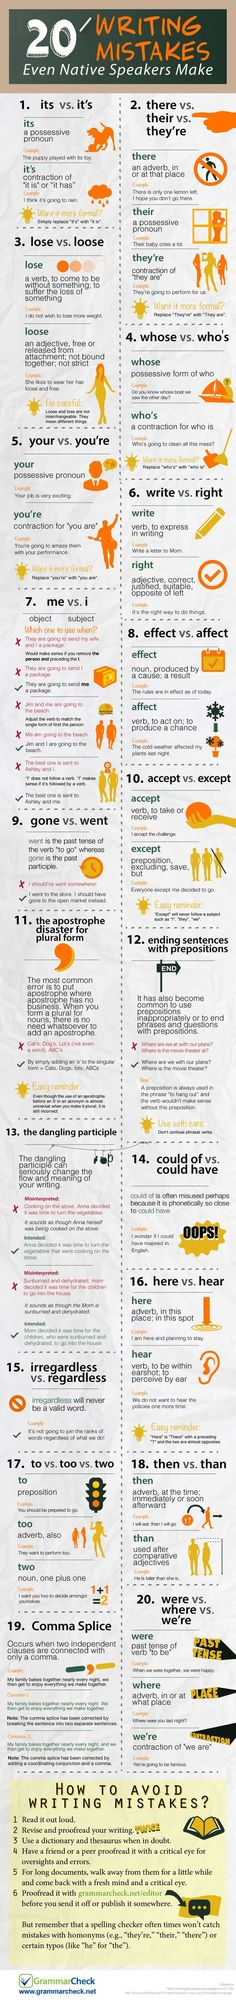 writing-mistakes-english-native-speakers.jpg 900×7,650 pixels